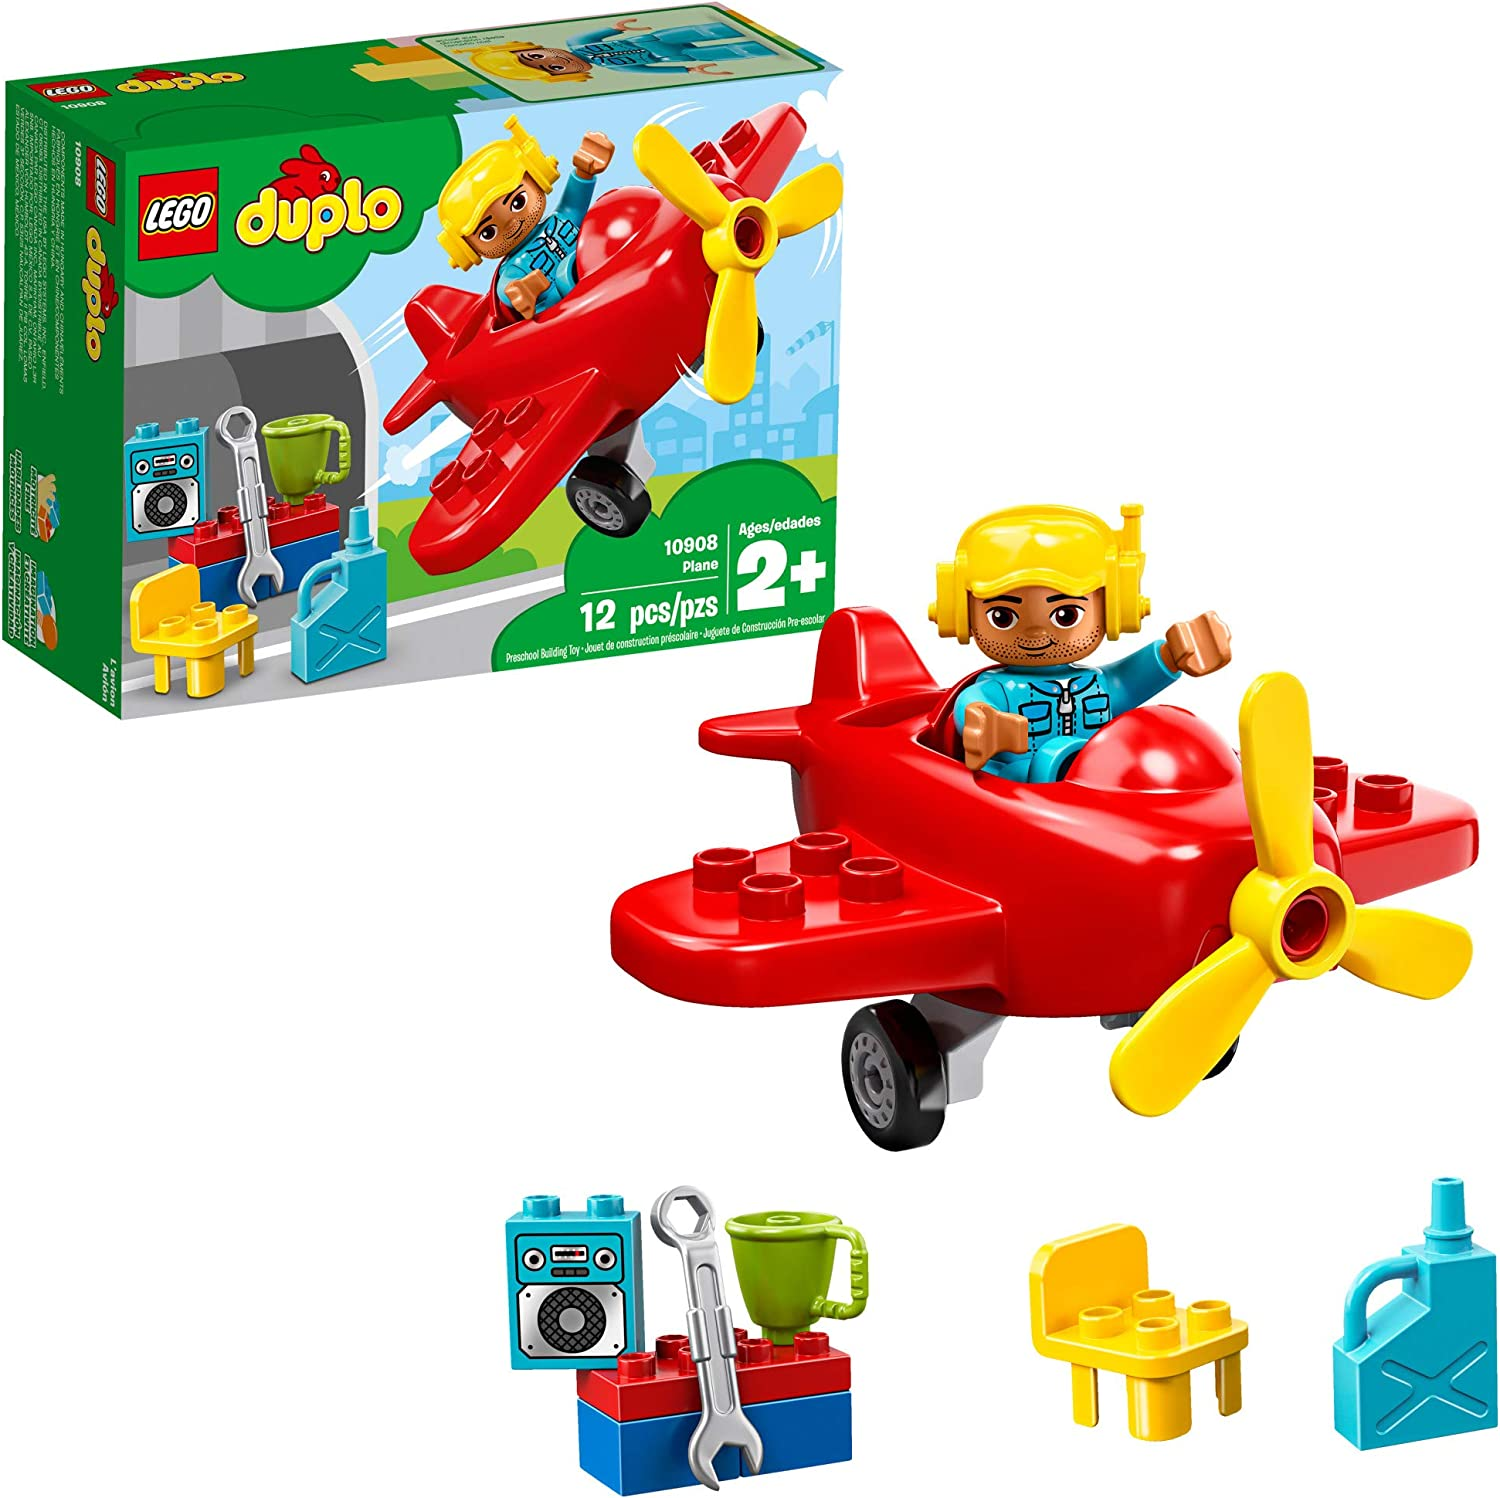 LEGO DUPLO Town Plane 10908 Building Blocks (12 Pieces)